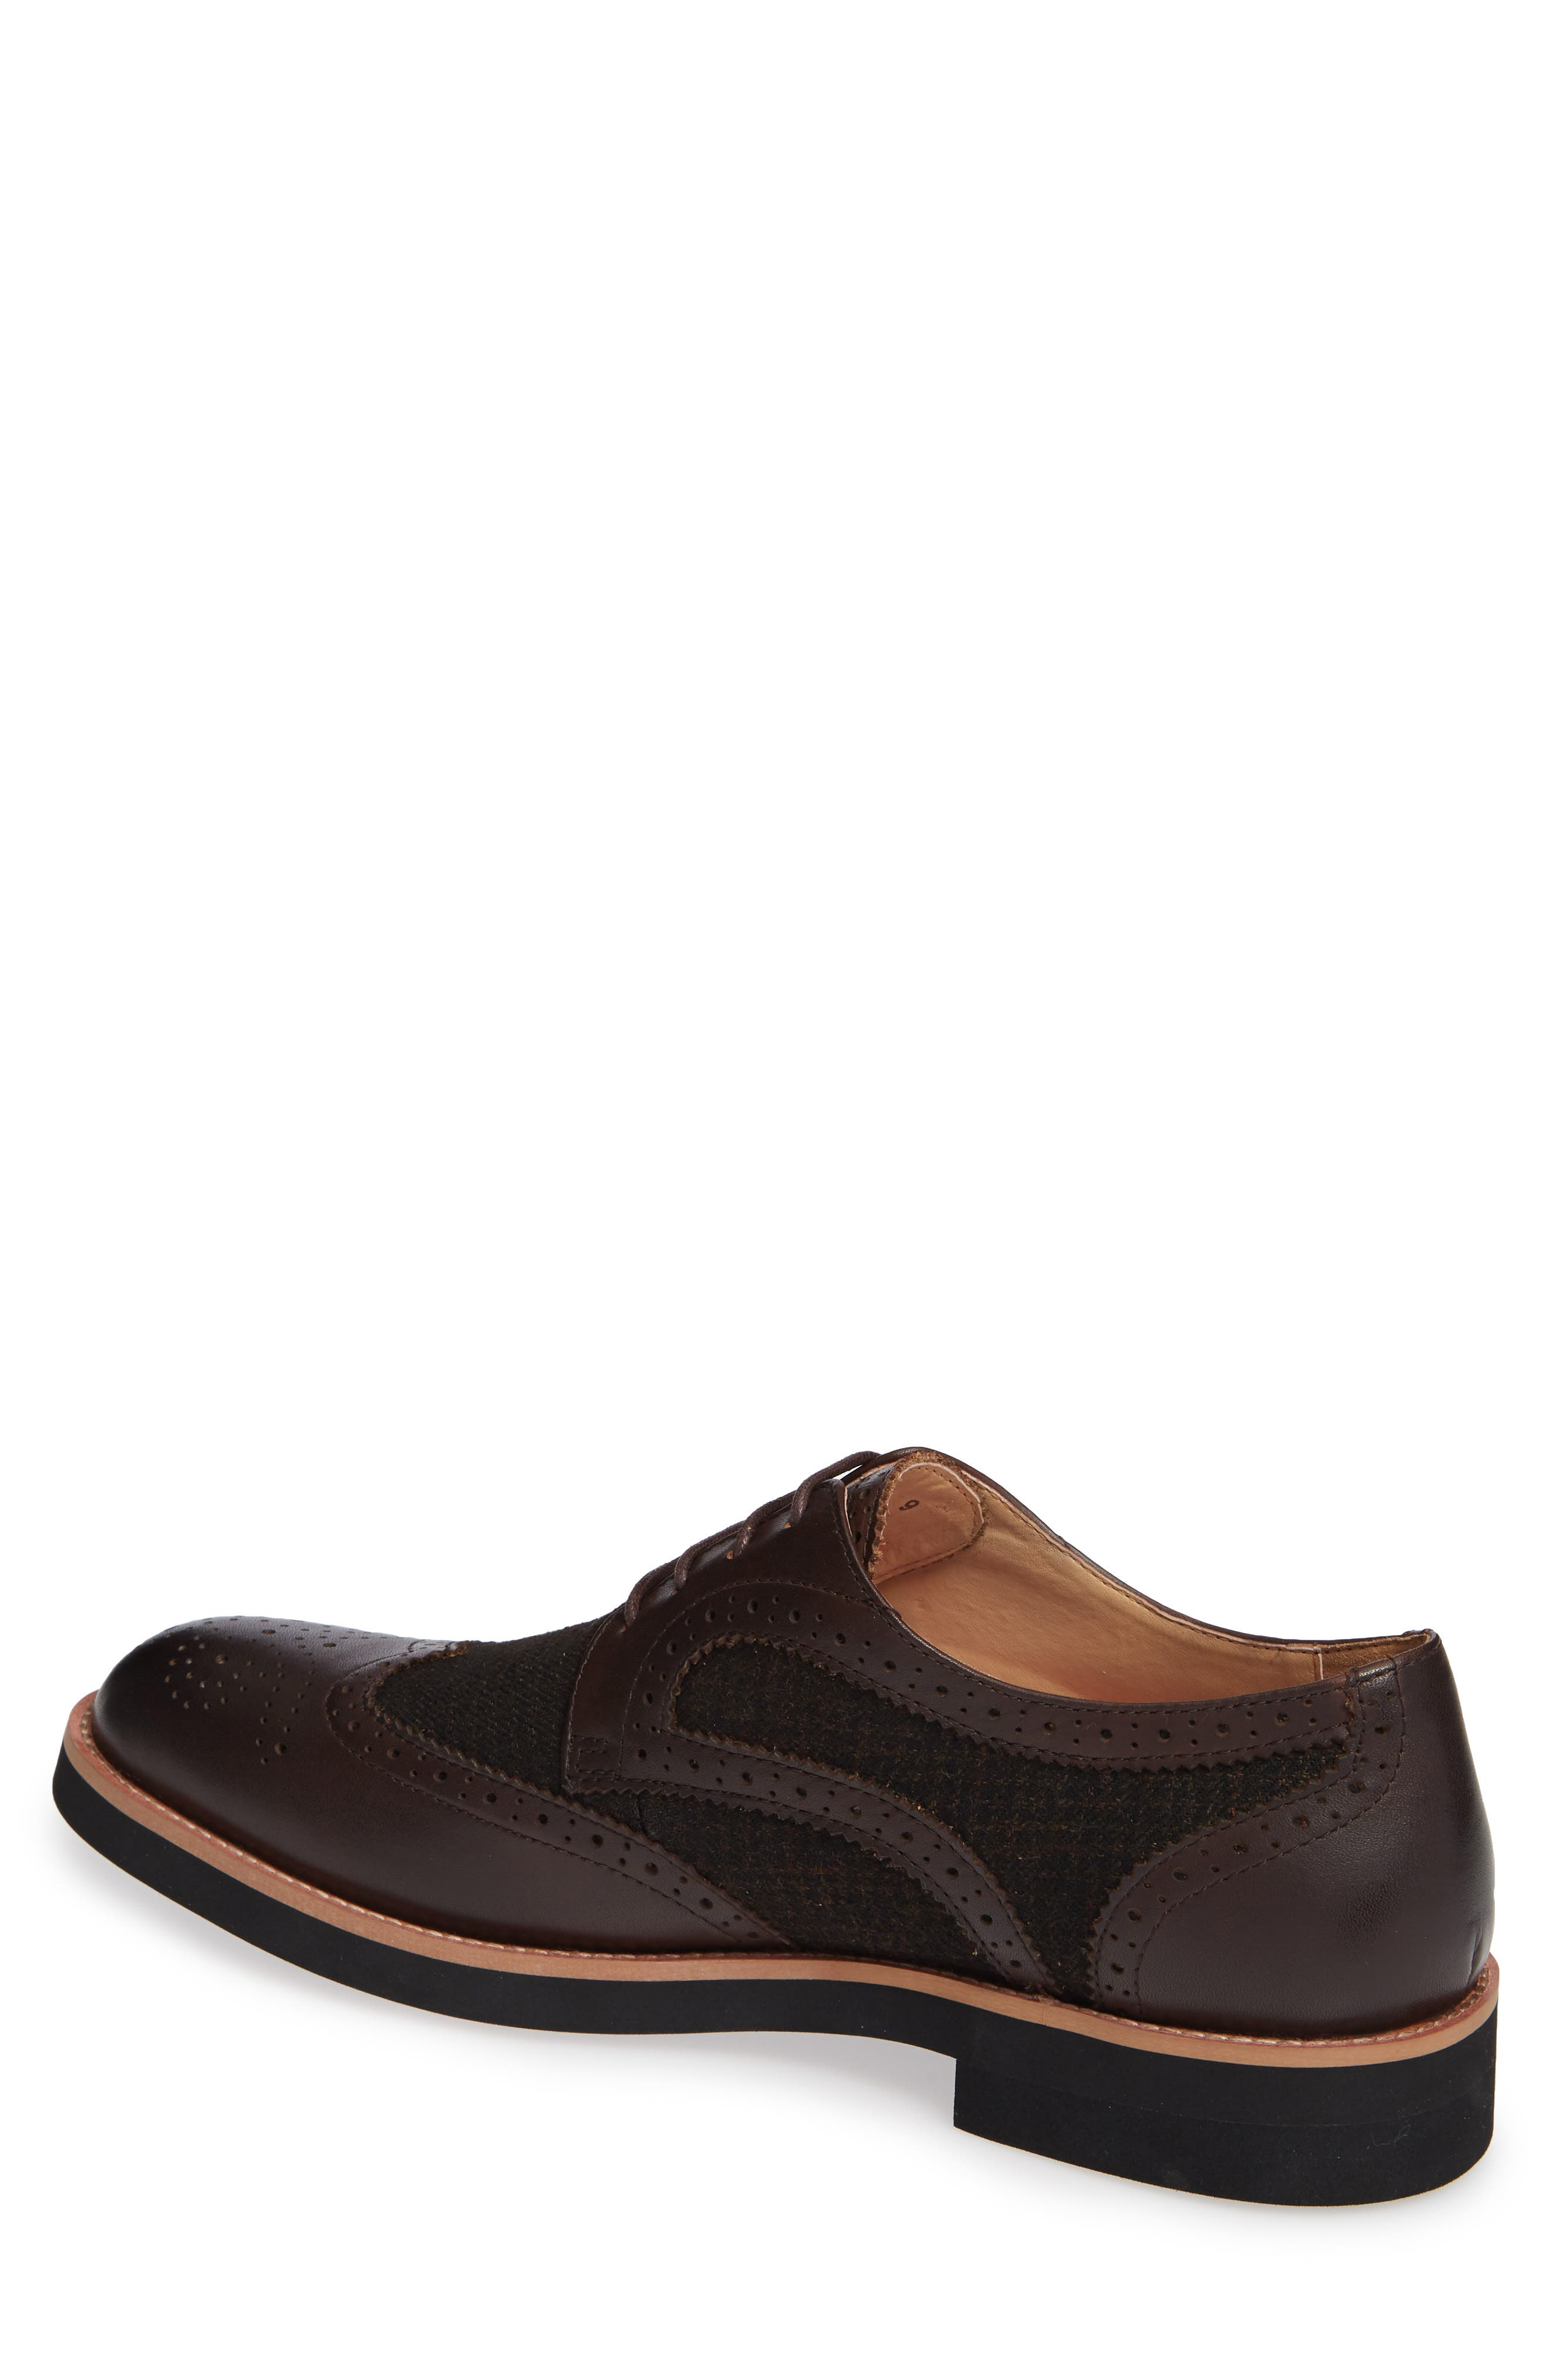 Bolton Wingtip,                             Alternate thumbnail 2, color,                             BROWN